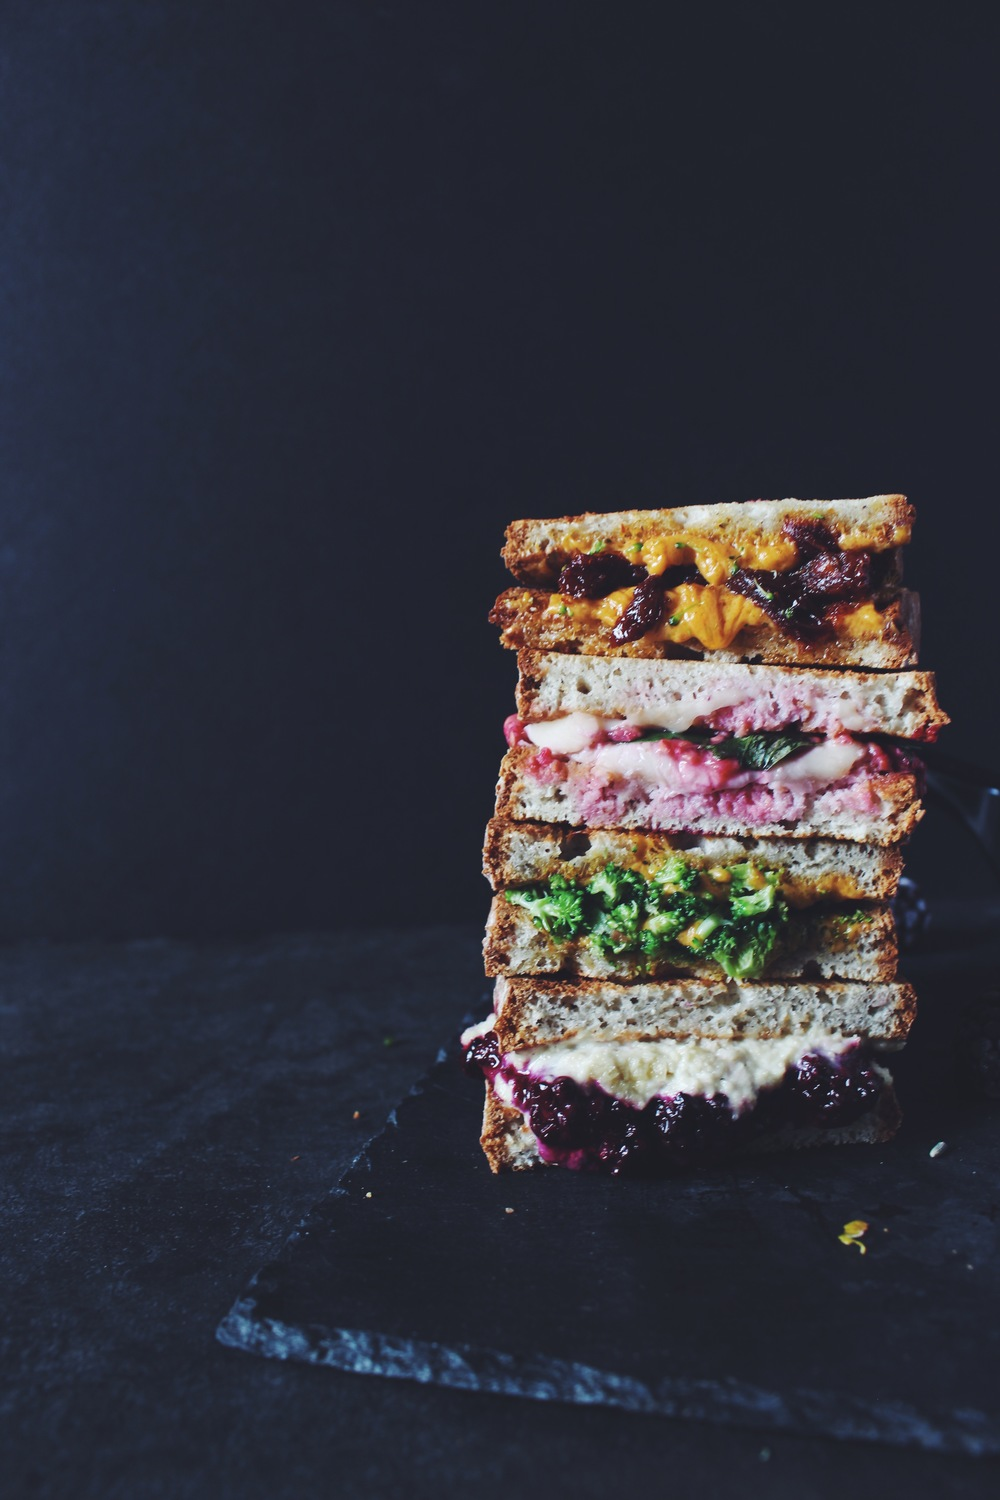 Vegan Grilled cheese sandwich recipes | Broccoli cheddar / raspberry basil / lavender lemon blackberry ricotta / sun dried tomato and cheddar / caramelized onion and cheddar